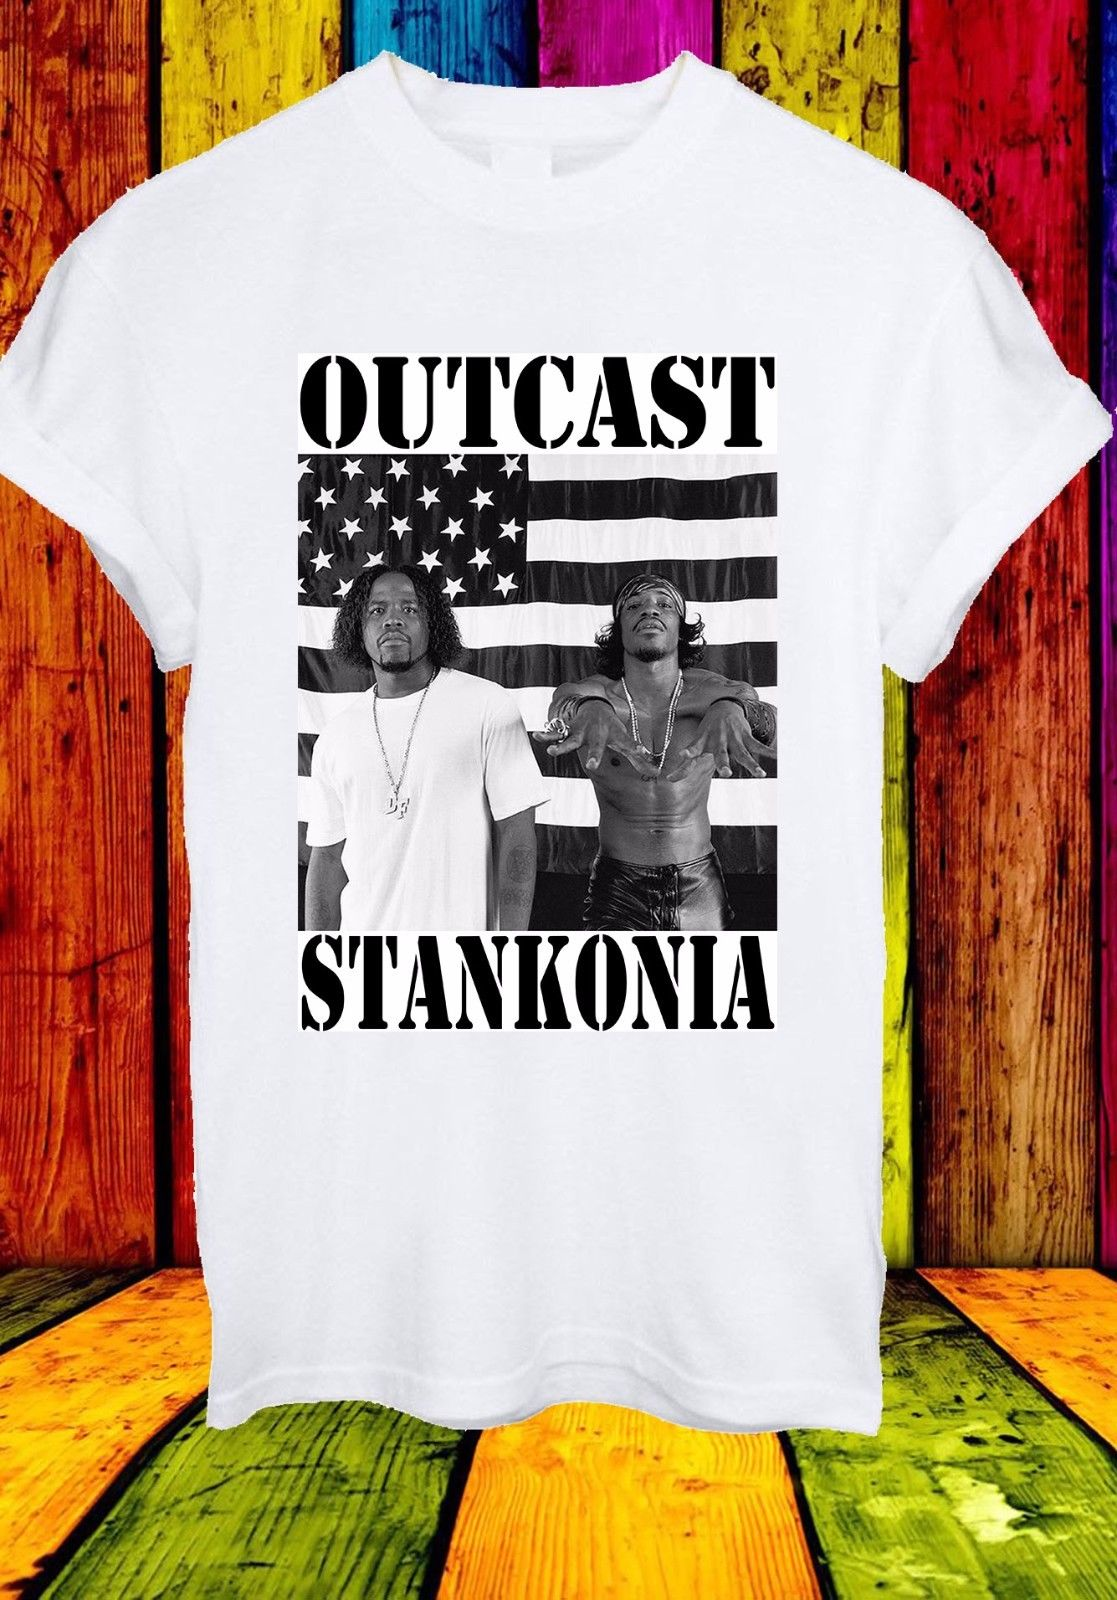 Outkast Stankonia Album Cover American Hip Hop Rap Unisex T Shirt Men Women 733 for youth middle-age the elder Tee Shirt image